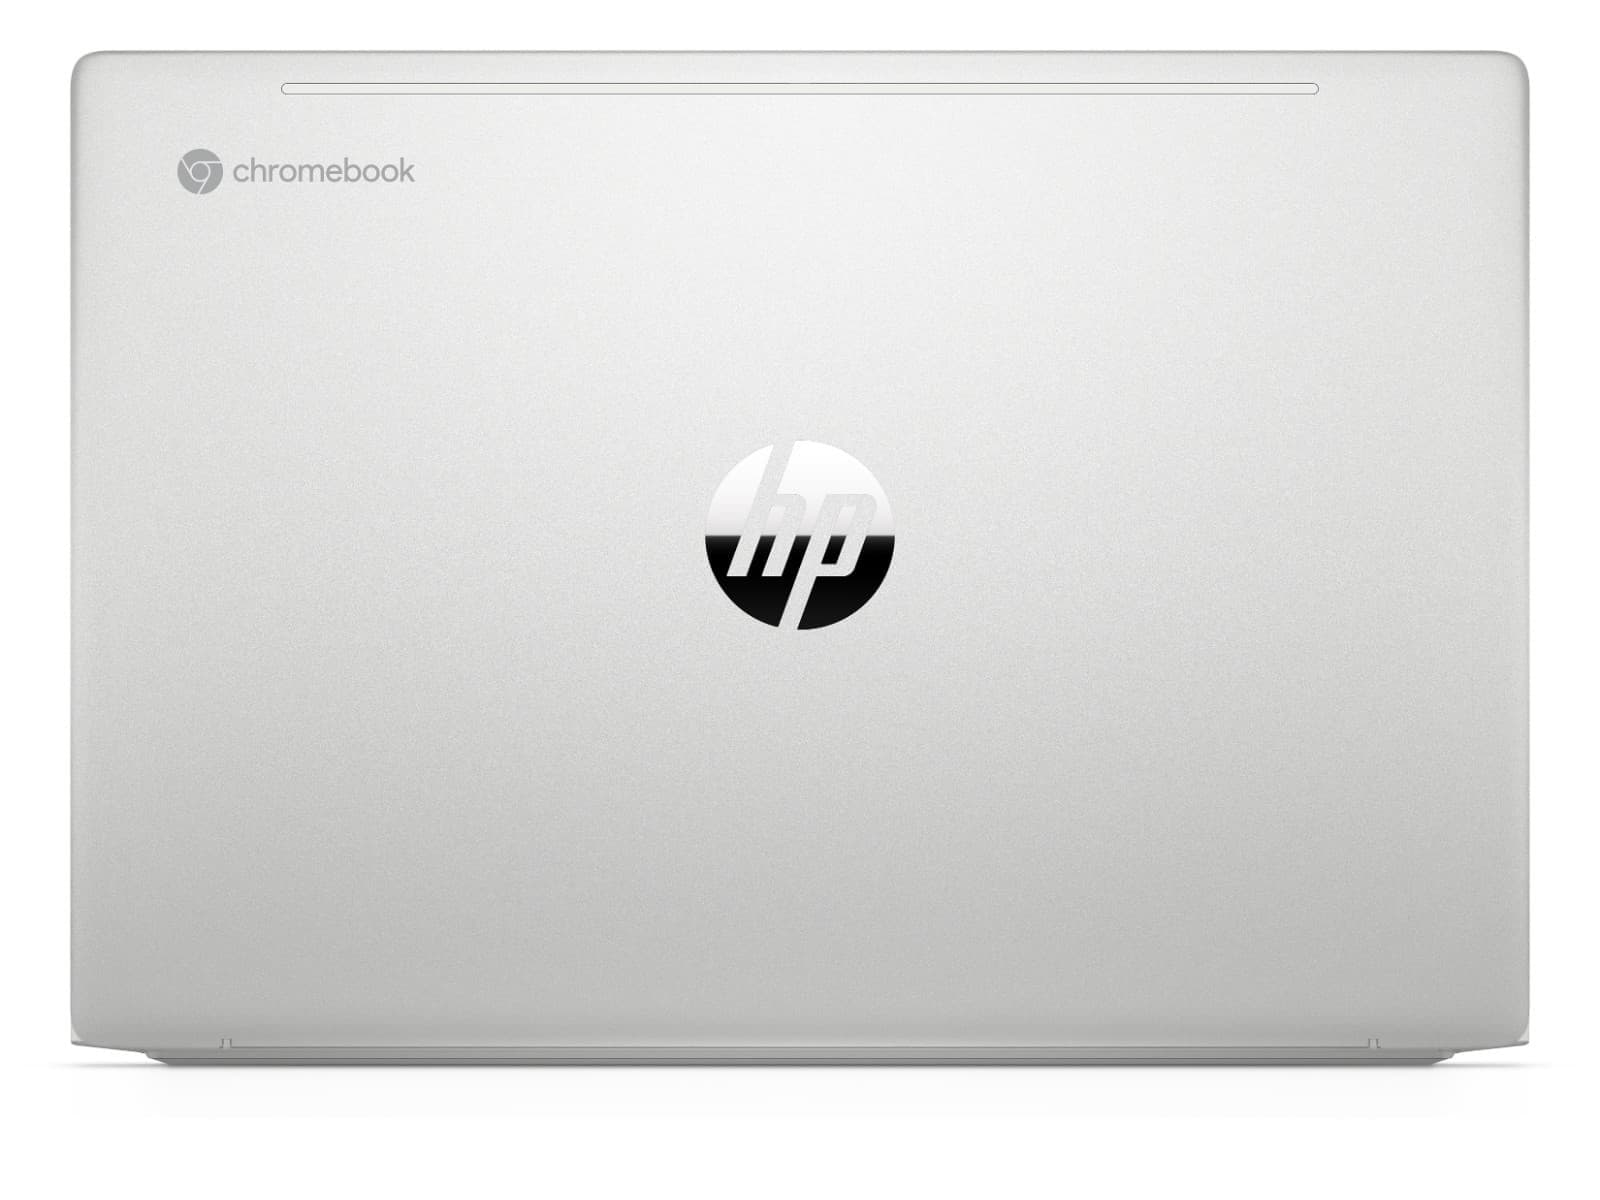 HP Pro c645 Chromebook Enterprise Rear